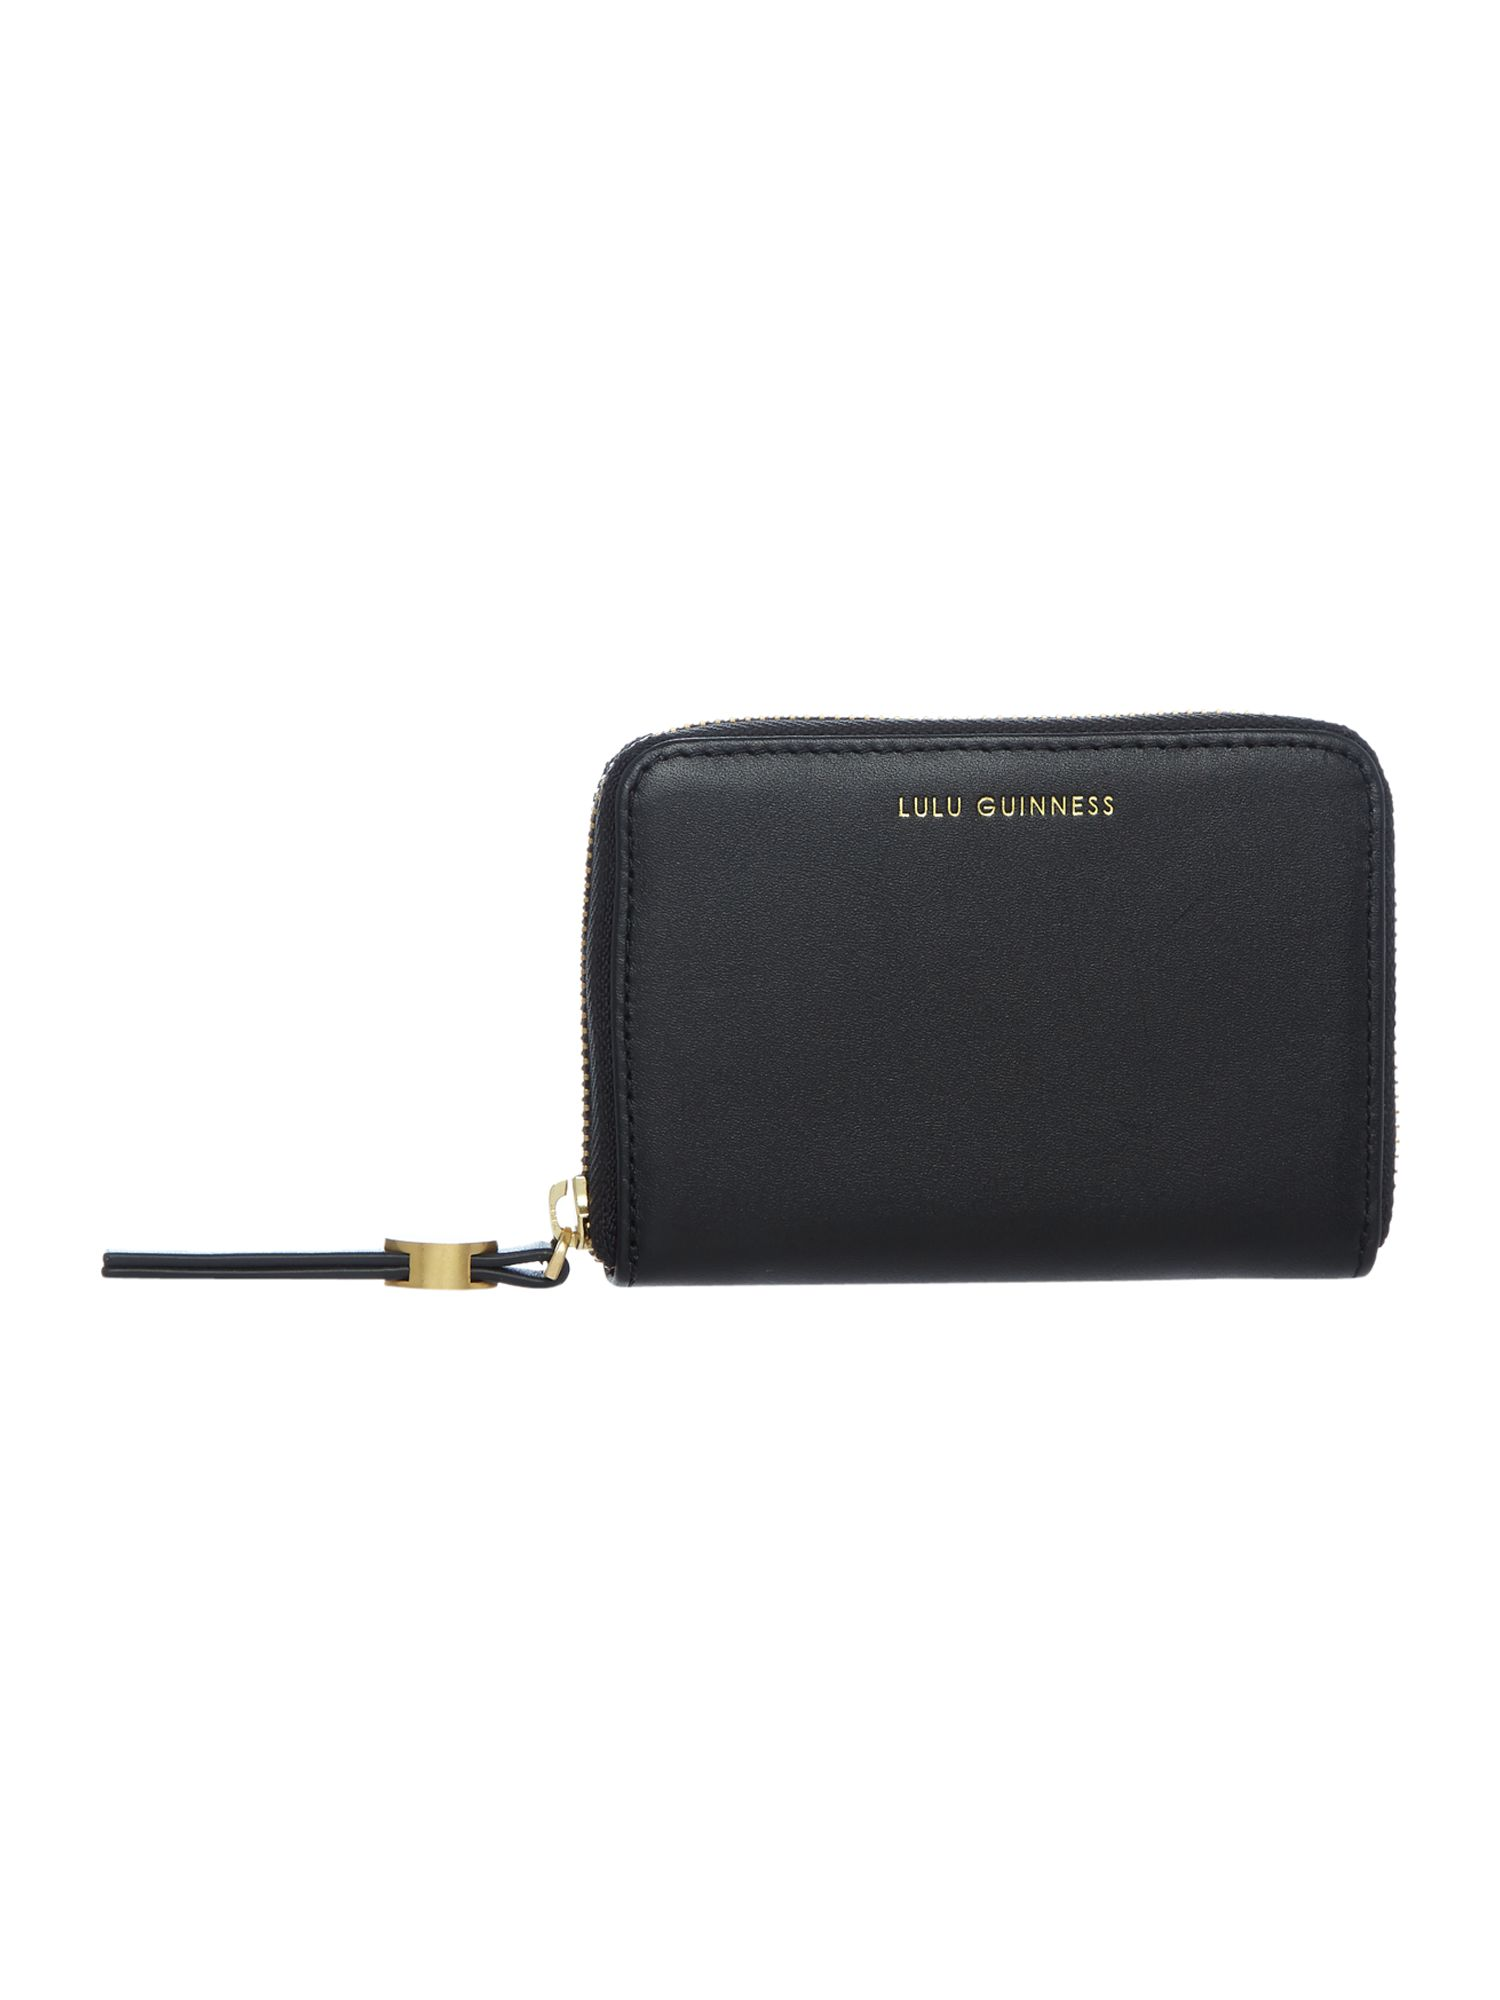 Lulu Guinness Blk sml smooth continental wallet, Black